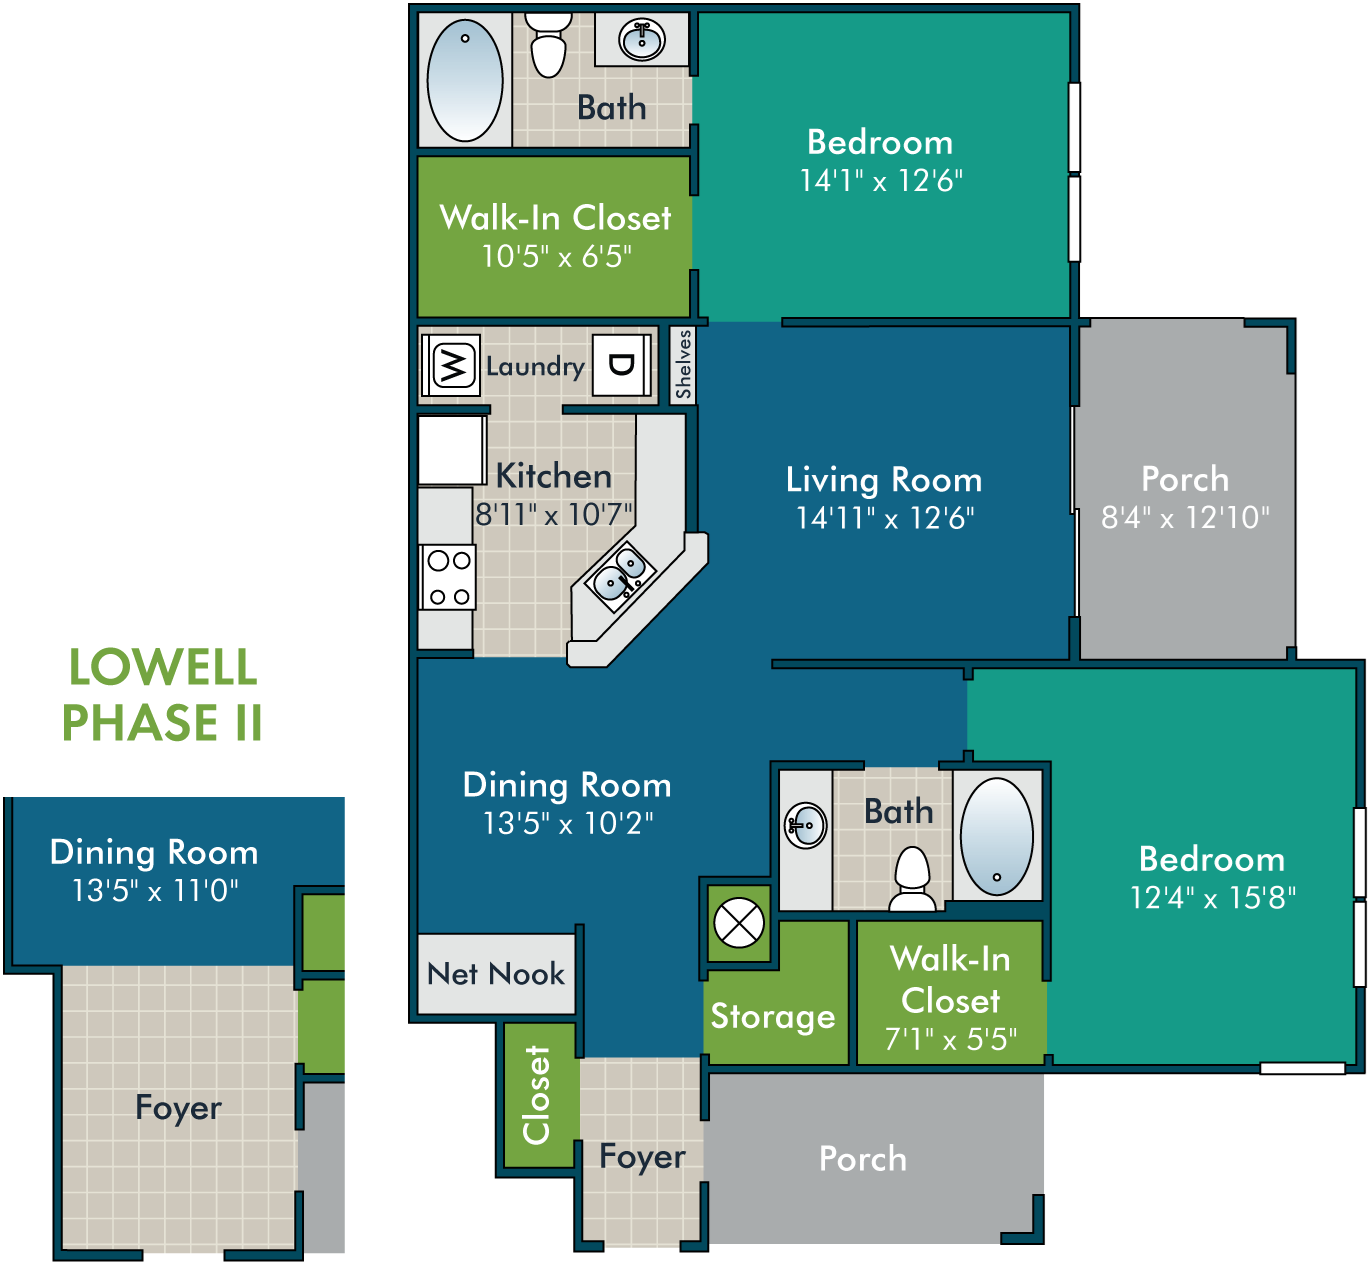 Lowell_2BR2BA Floor Plan at Abberly Green Apartment Homes by HHHunt, Mooresville, North Carolina